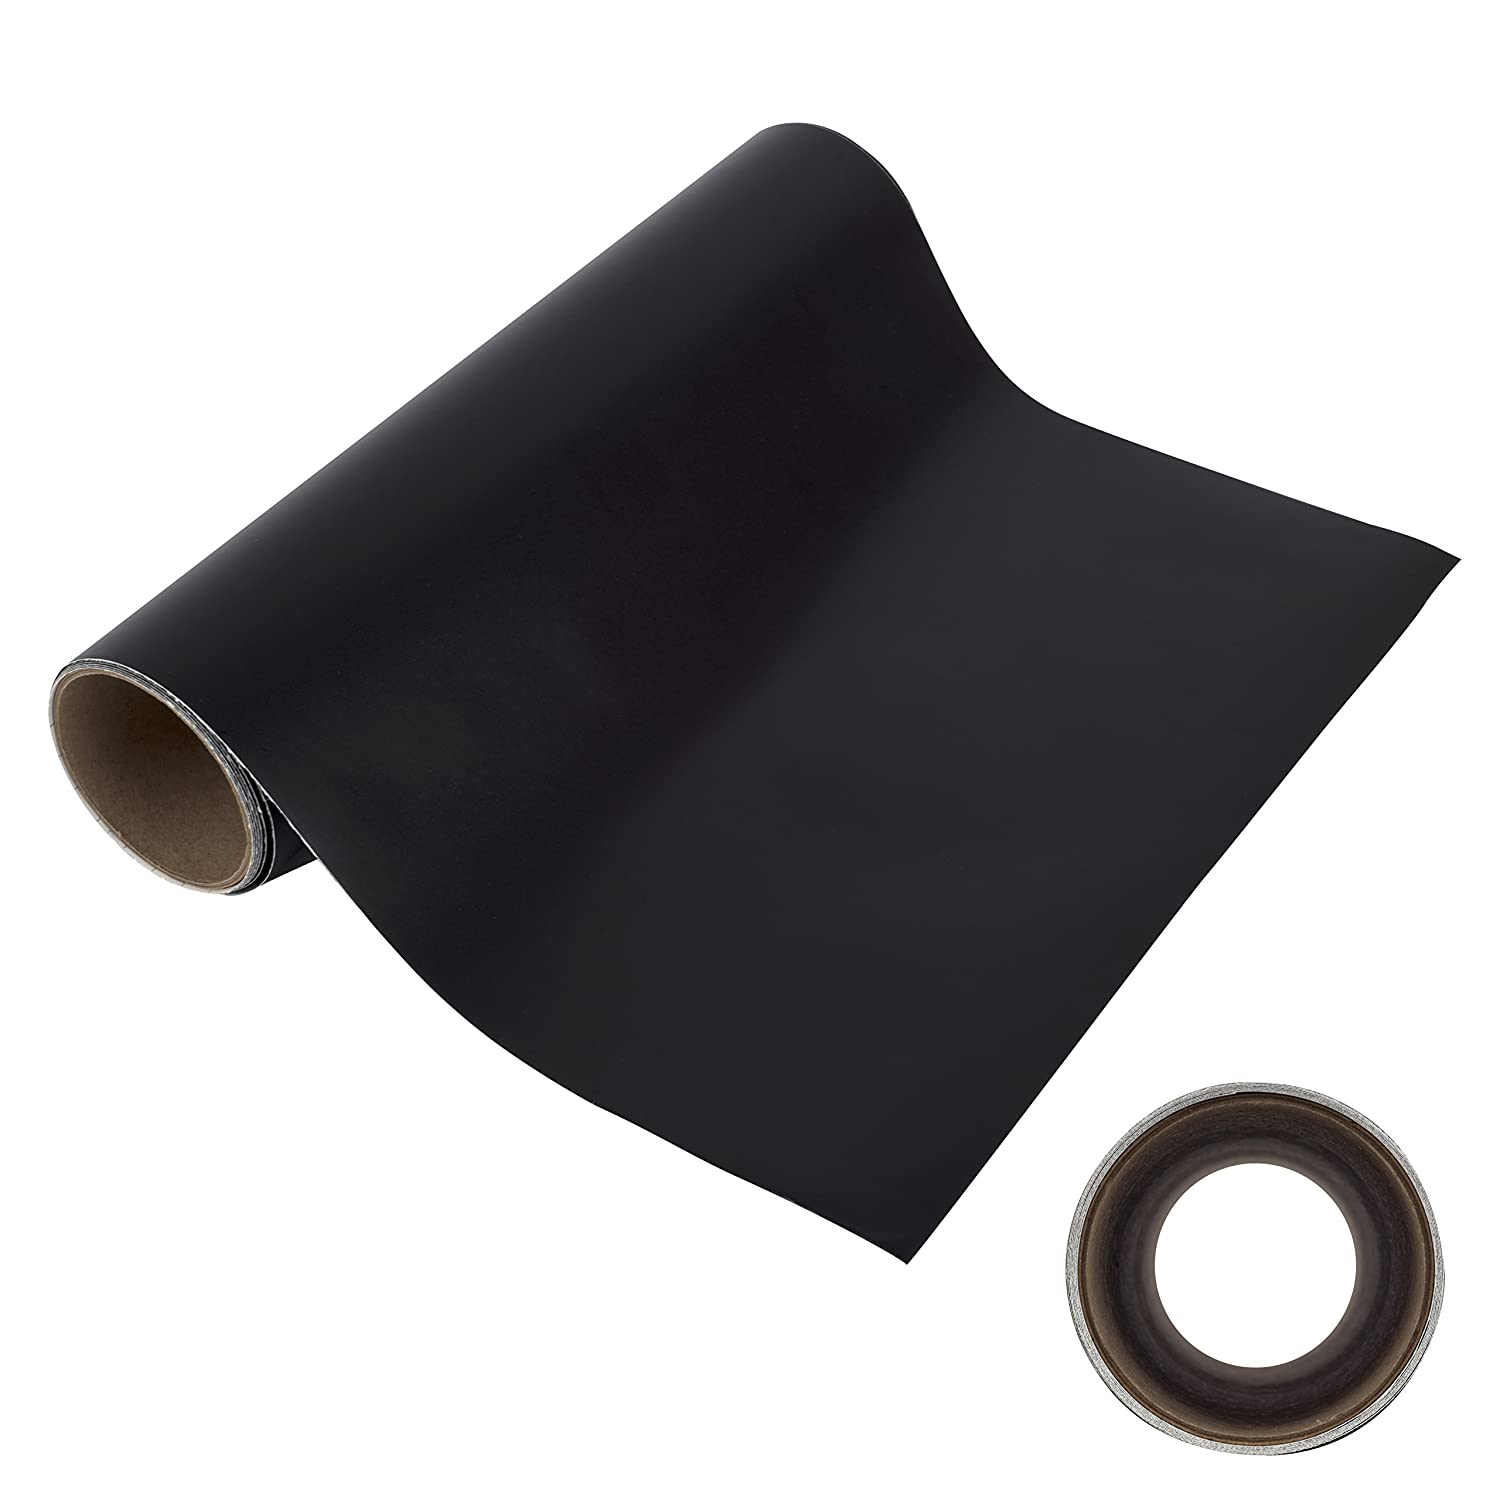 WEEDS EASILY BLACK MATTE ADHESIVE VINYL 30.5cm X 2.4m ROLL of Non-Stretchy, Made in USA for Cricut, Silhouette Cameo, Oracal Vinyl Cutters, Printers, Letters, Decals, Signs by Angel Crafts Angel Direct Products 12X6010-BLK